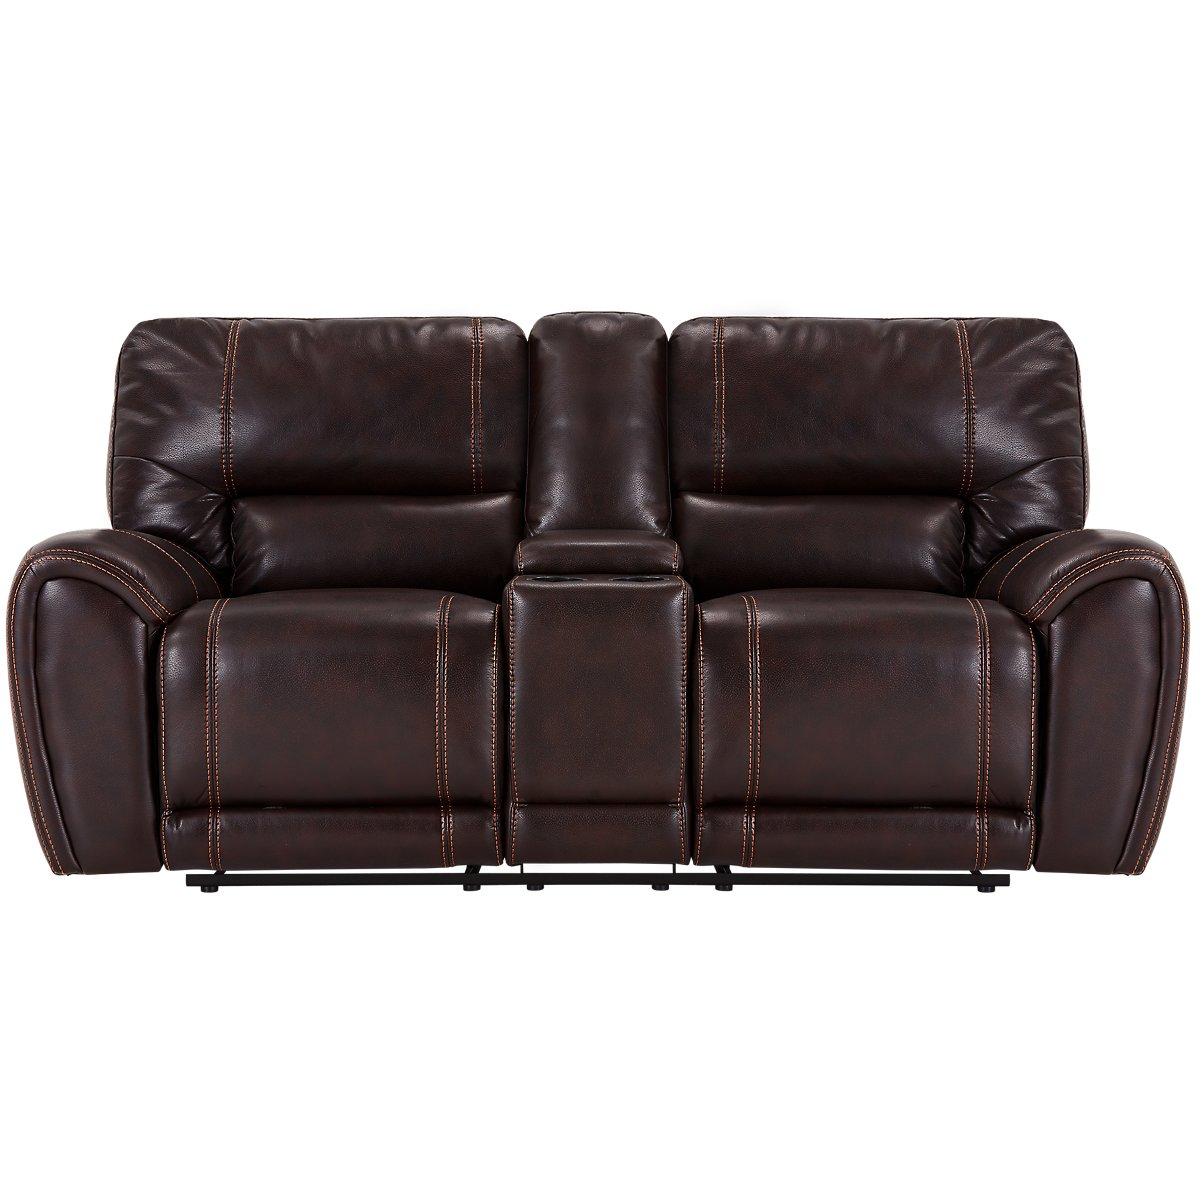 City Furniture: Bailey Dark Brown Microfiber Reclining